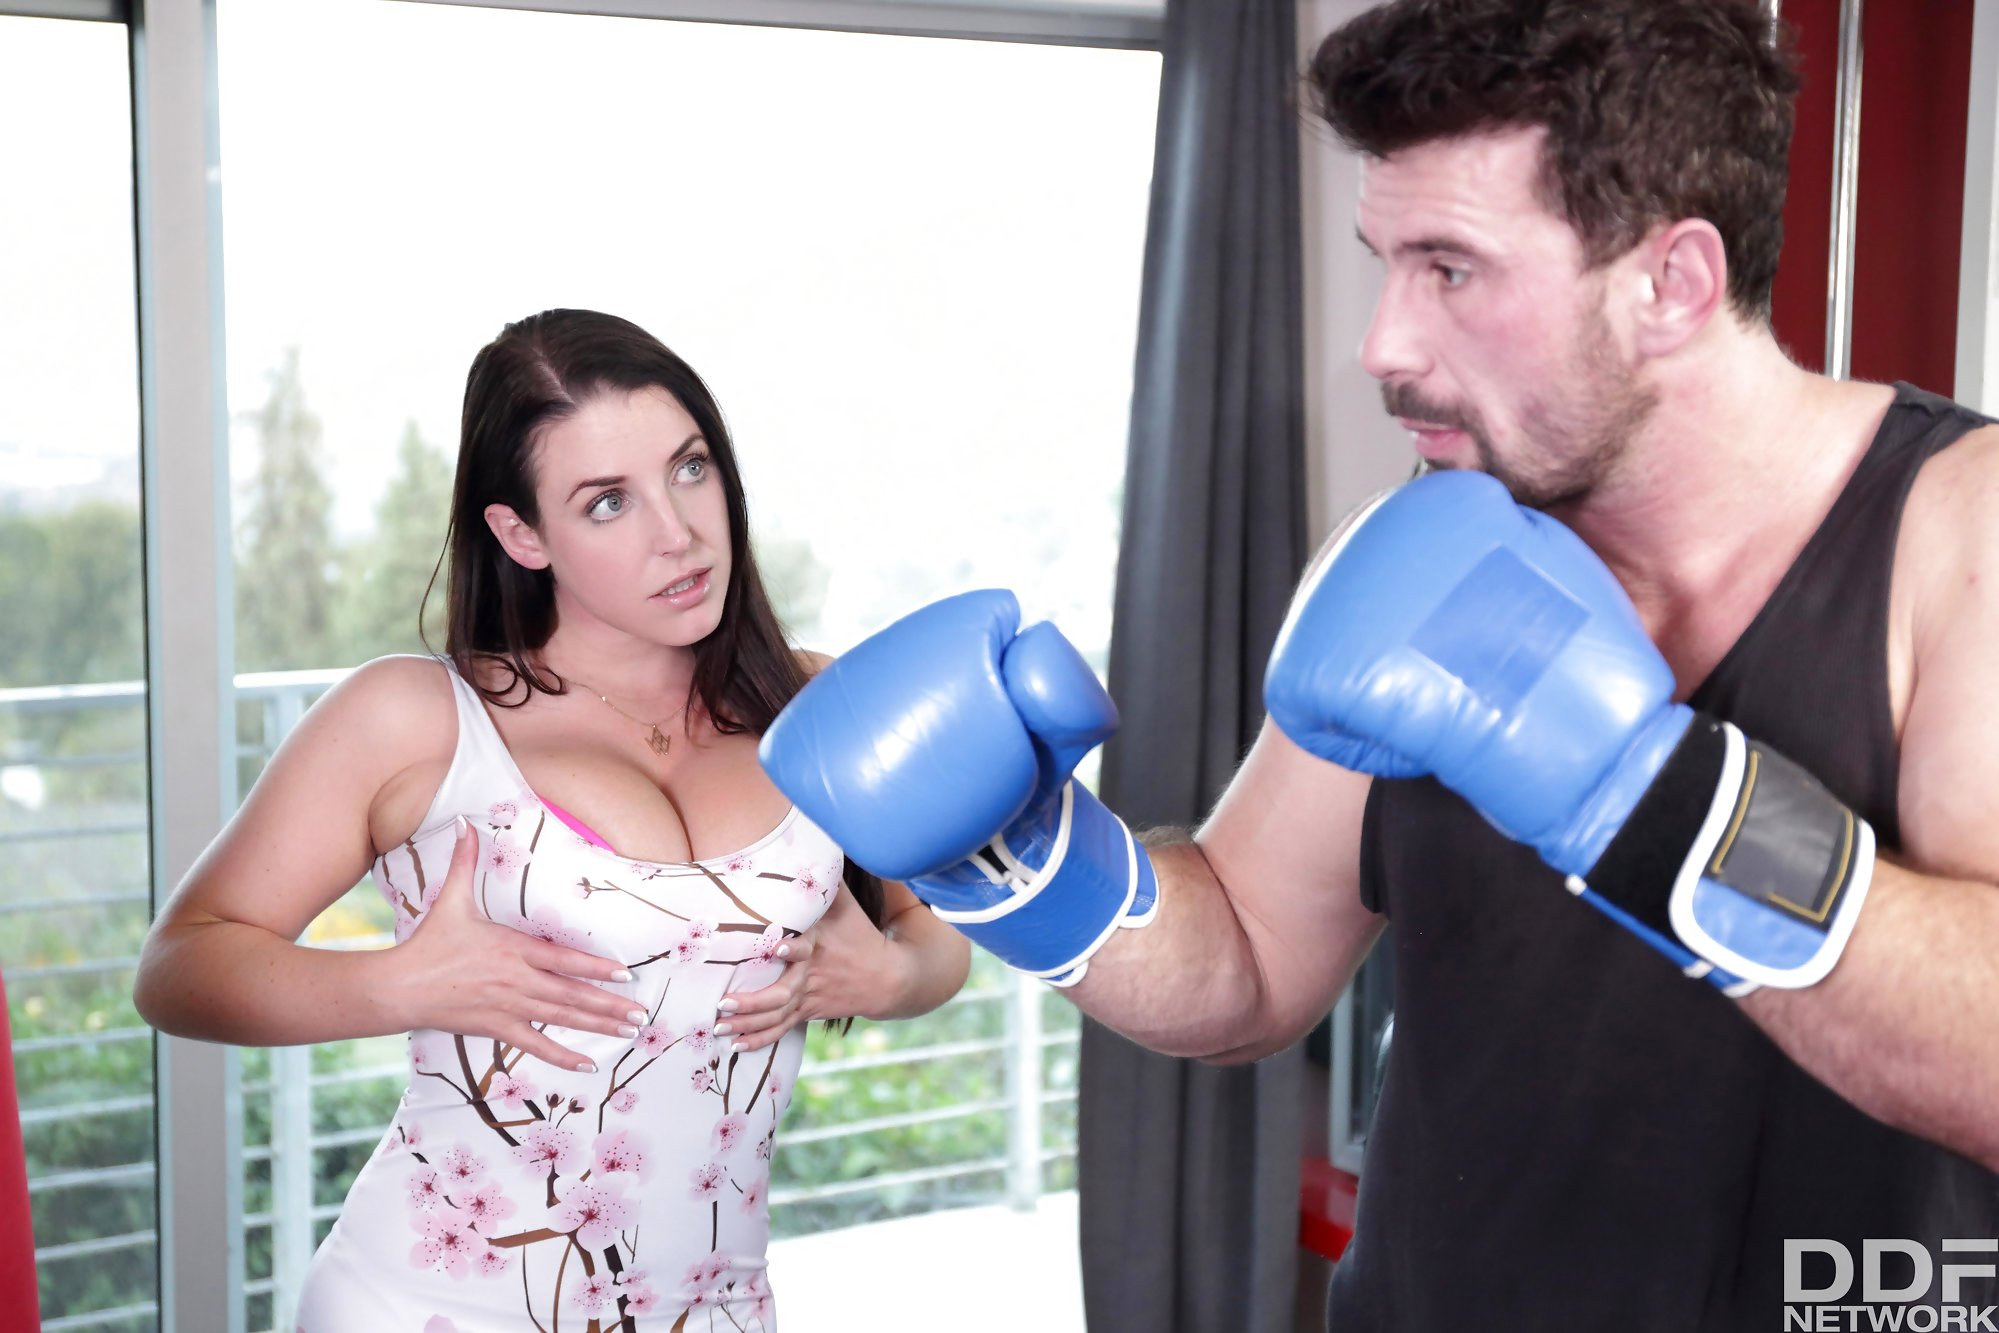 DDFBusty – Angela White – Persuasive Busty Arguments